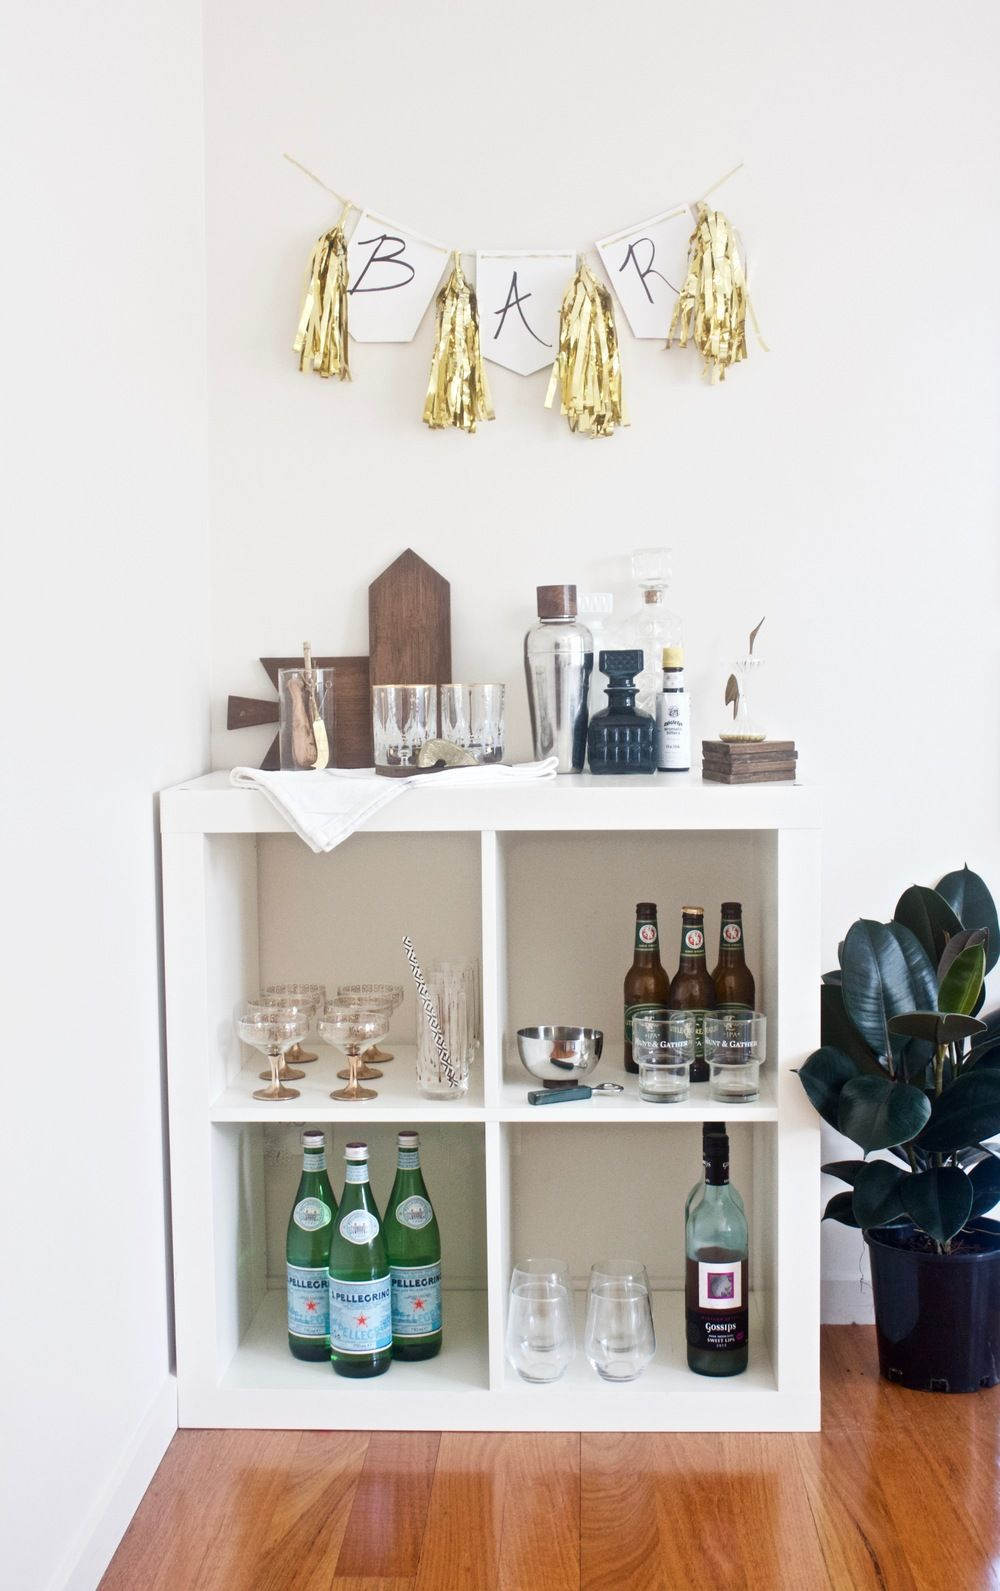 Wohnzimmer Bar Ikea 3 Ways To Style Ikea S Kallax Shelf From Gold Blog Bar